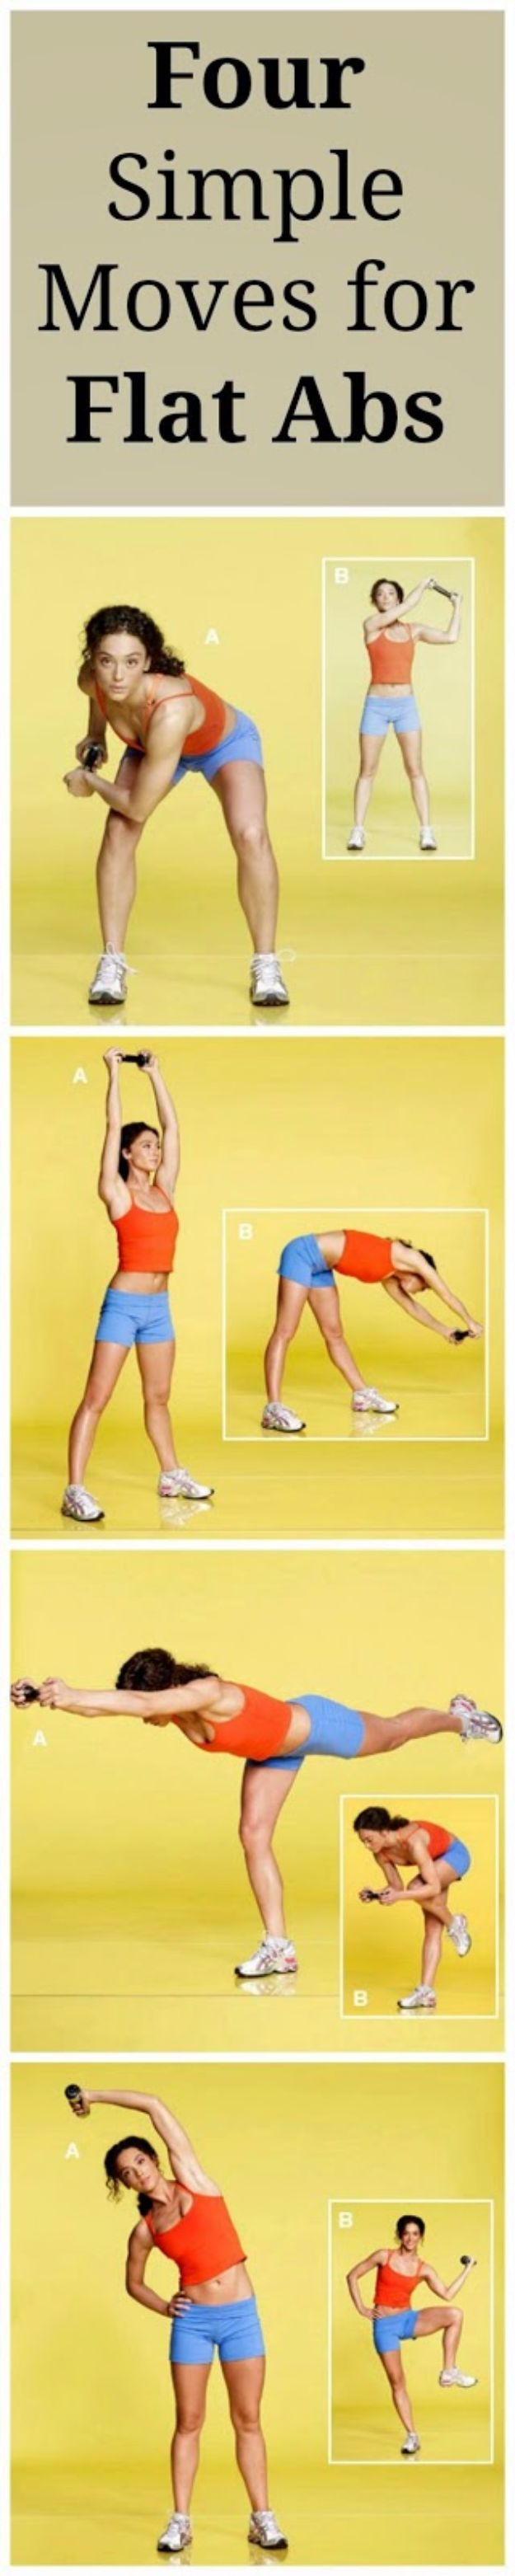 Best Exercises for 2018 - Four Simple Moves For Flat Abs - Easy At Home Exercises - Quick Exercise Tutorials to Try at Lunch Break - Ways To Get In Shape - Butt, Abs, Arms, Legs, Thighs, Tummy http://diyjoy.com/best-at-home-exercises-2018